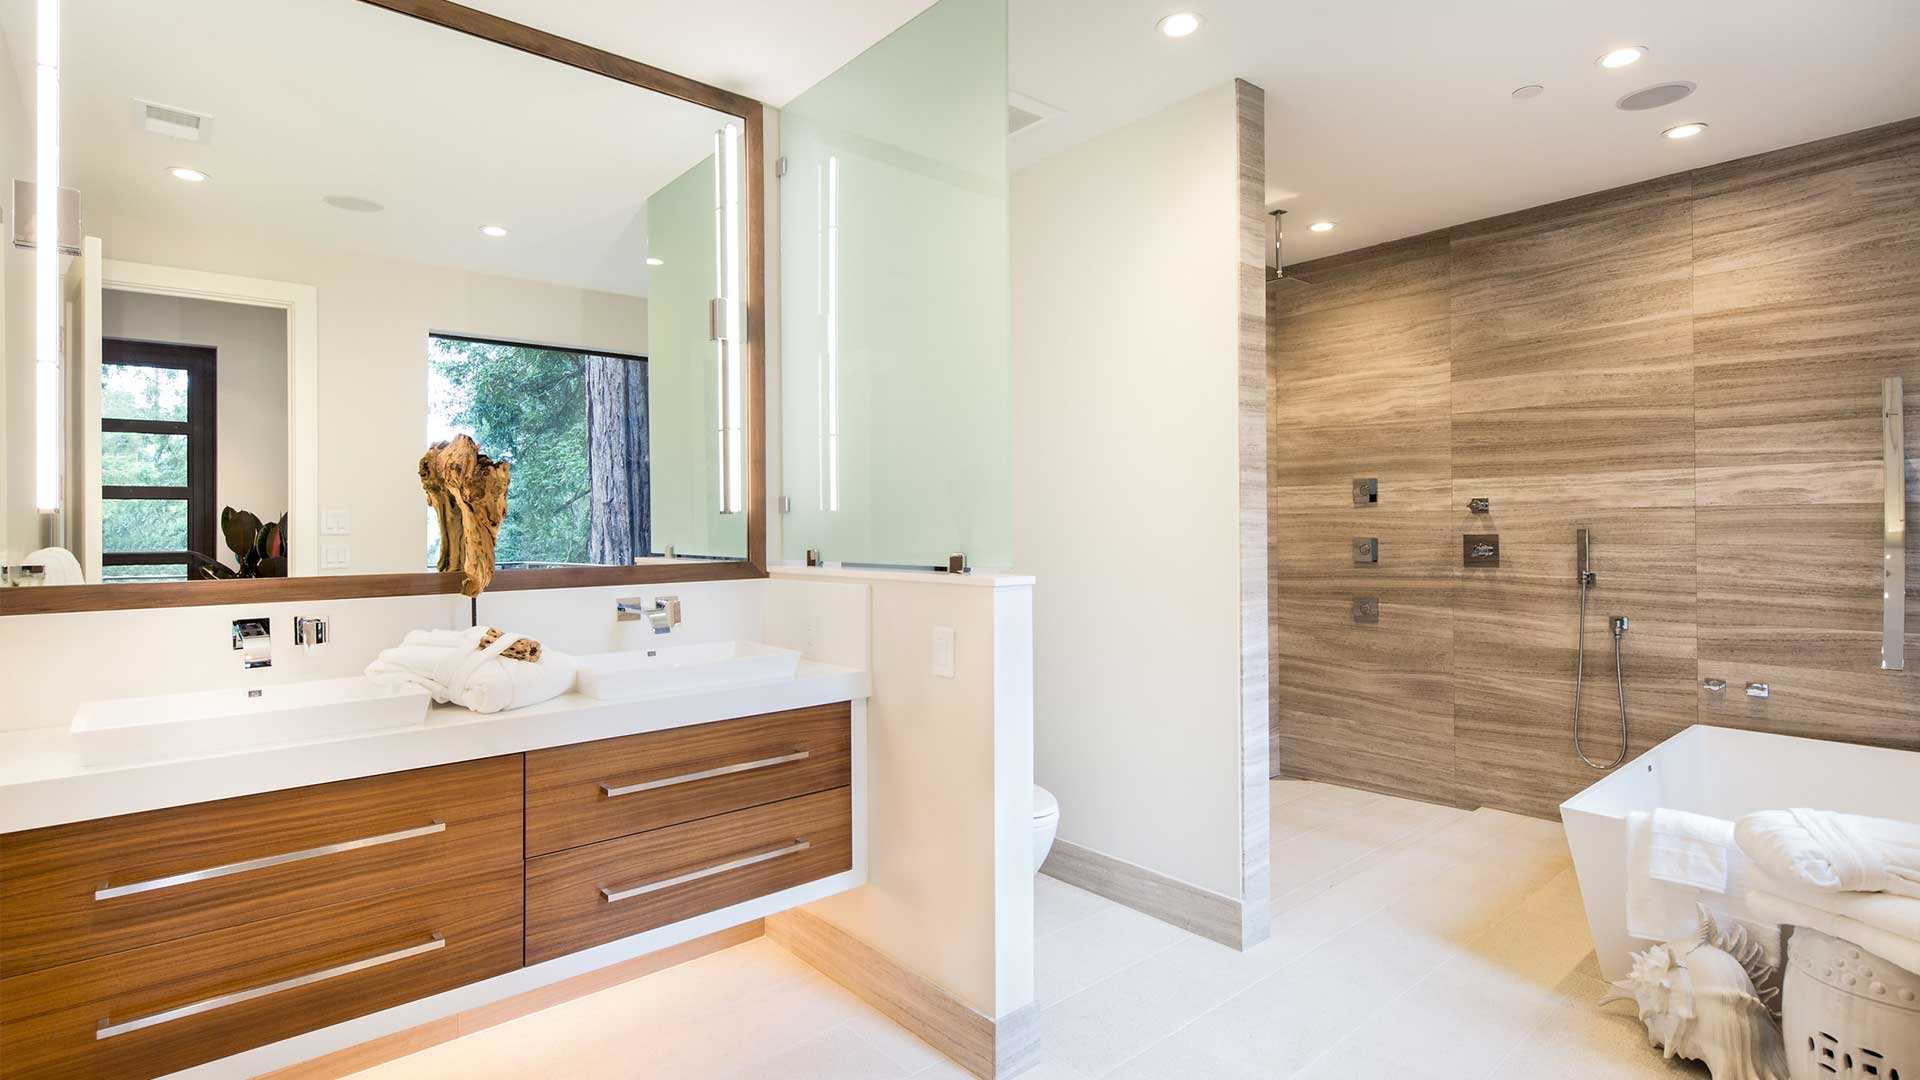 3 Kinds of Veneer Panels to Install at Your Home or Office